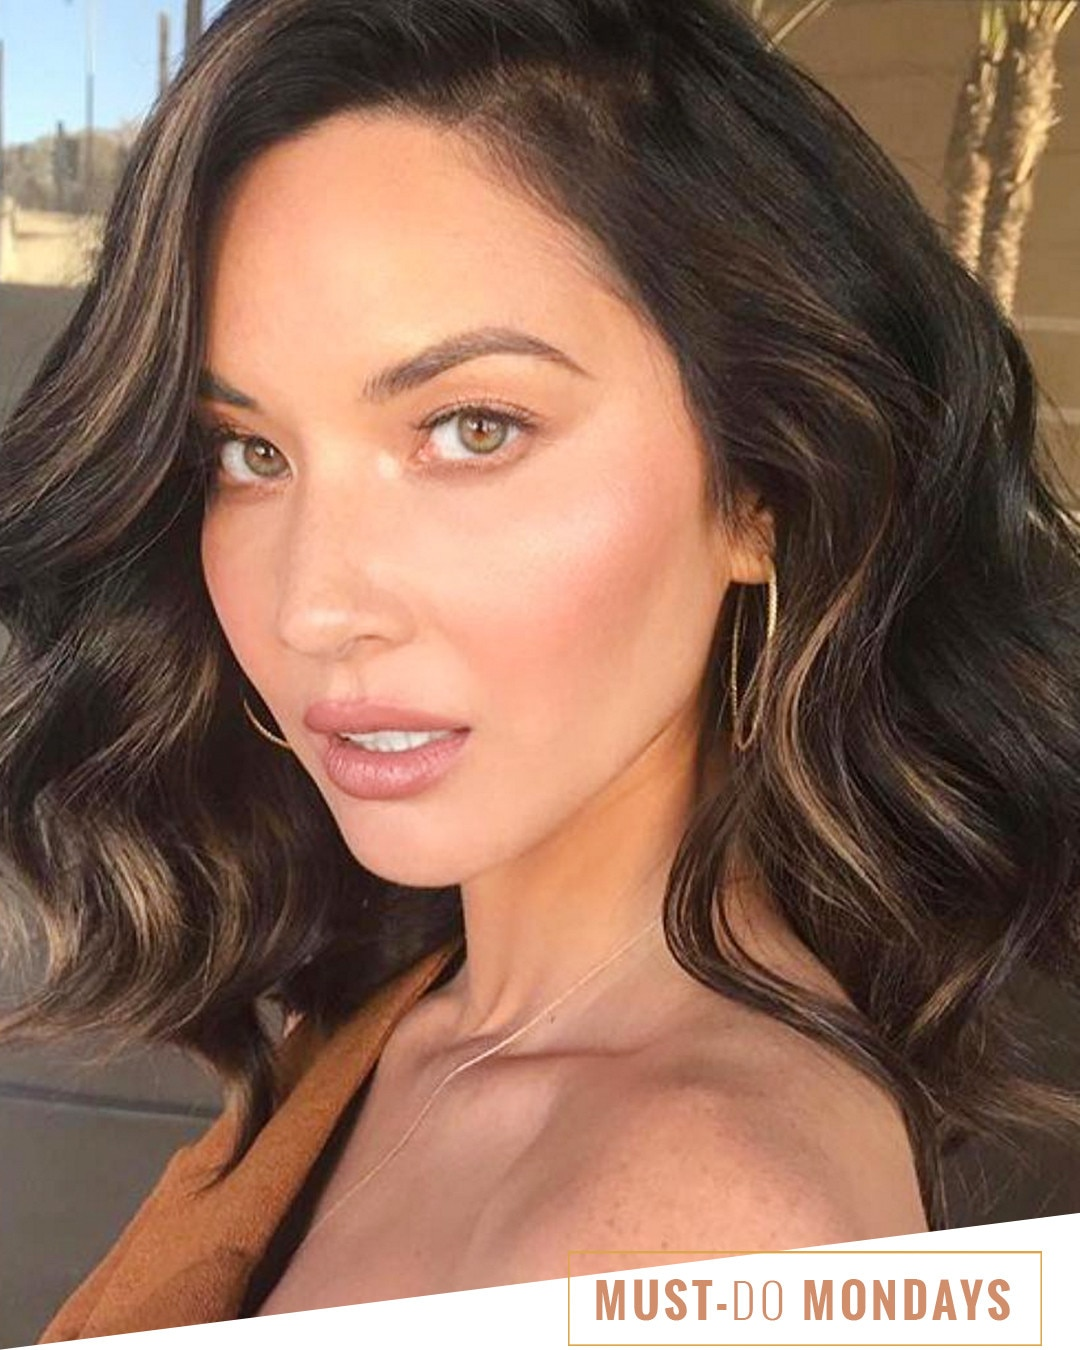 Olivia Munn naked (18 pictures) Hot, iCloud, underwear